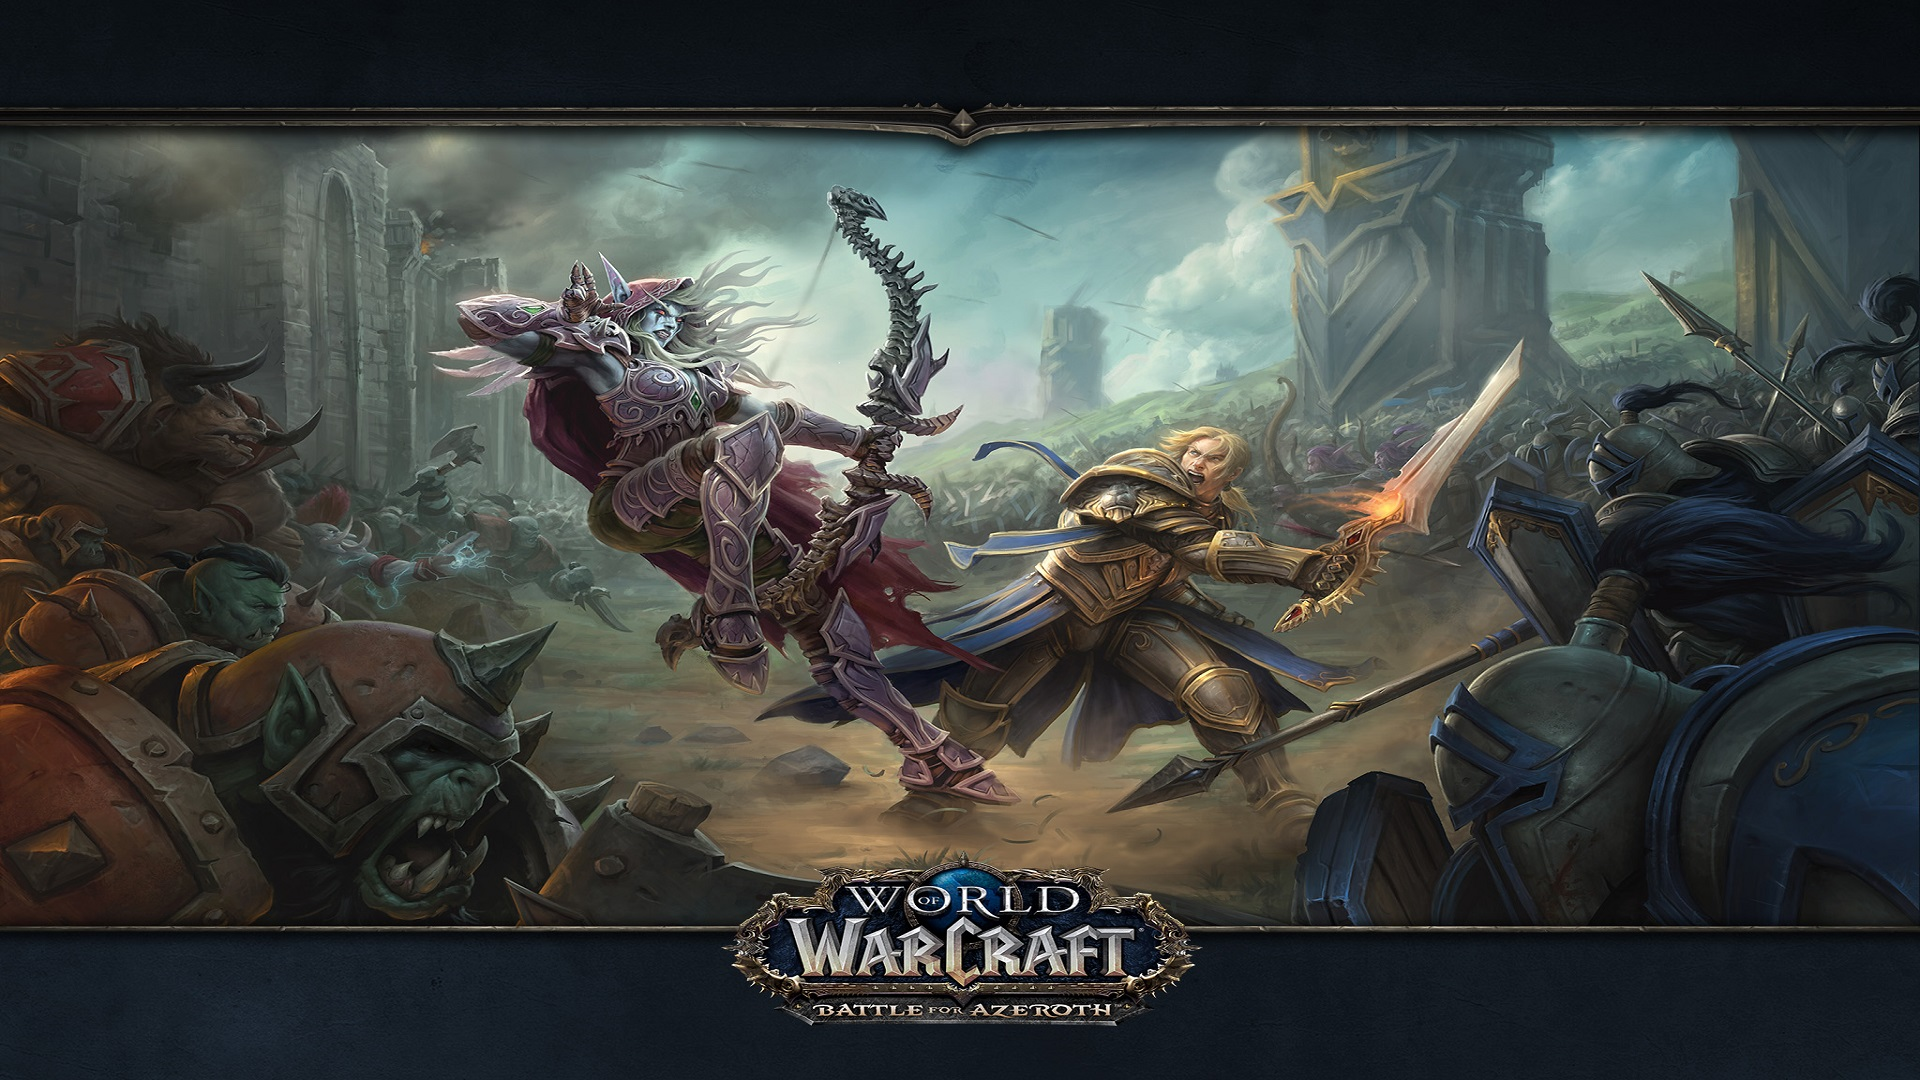 World Of Warcraft 1920x1080 Wallpaper Posted By John Tremblay